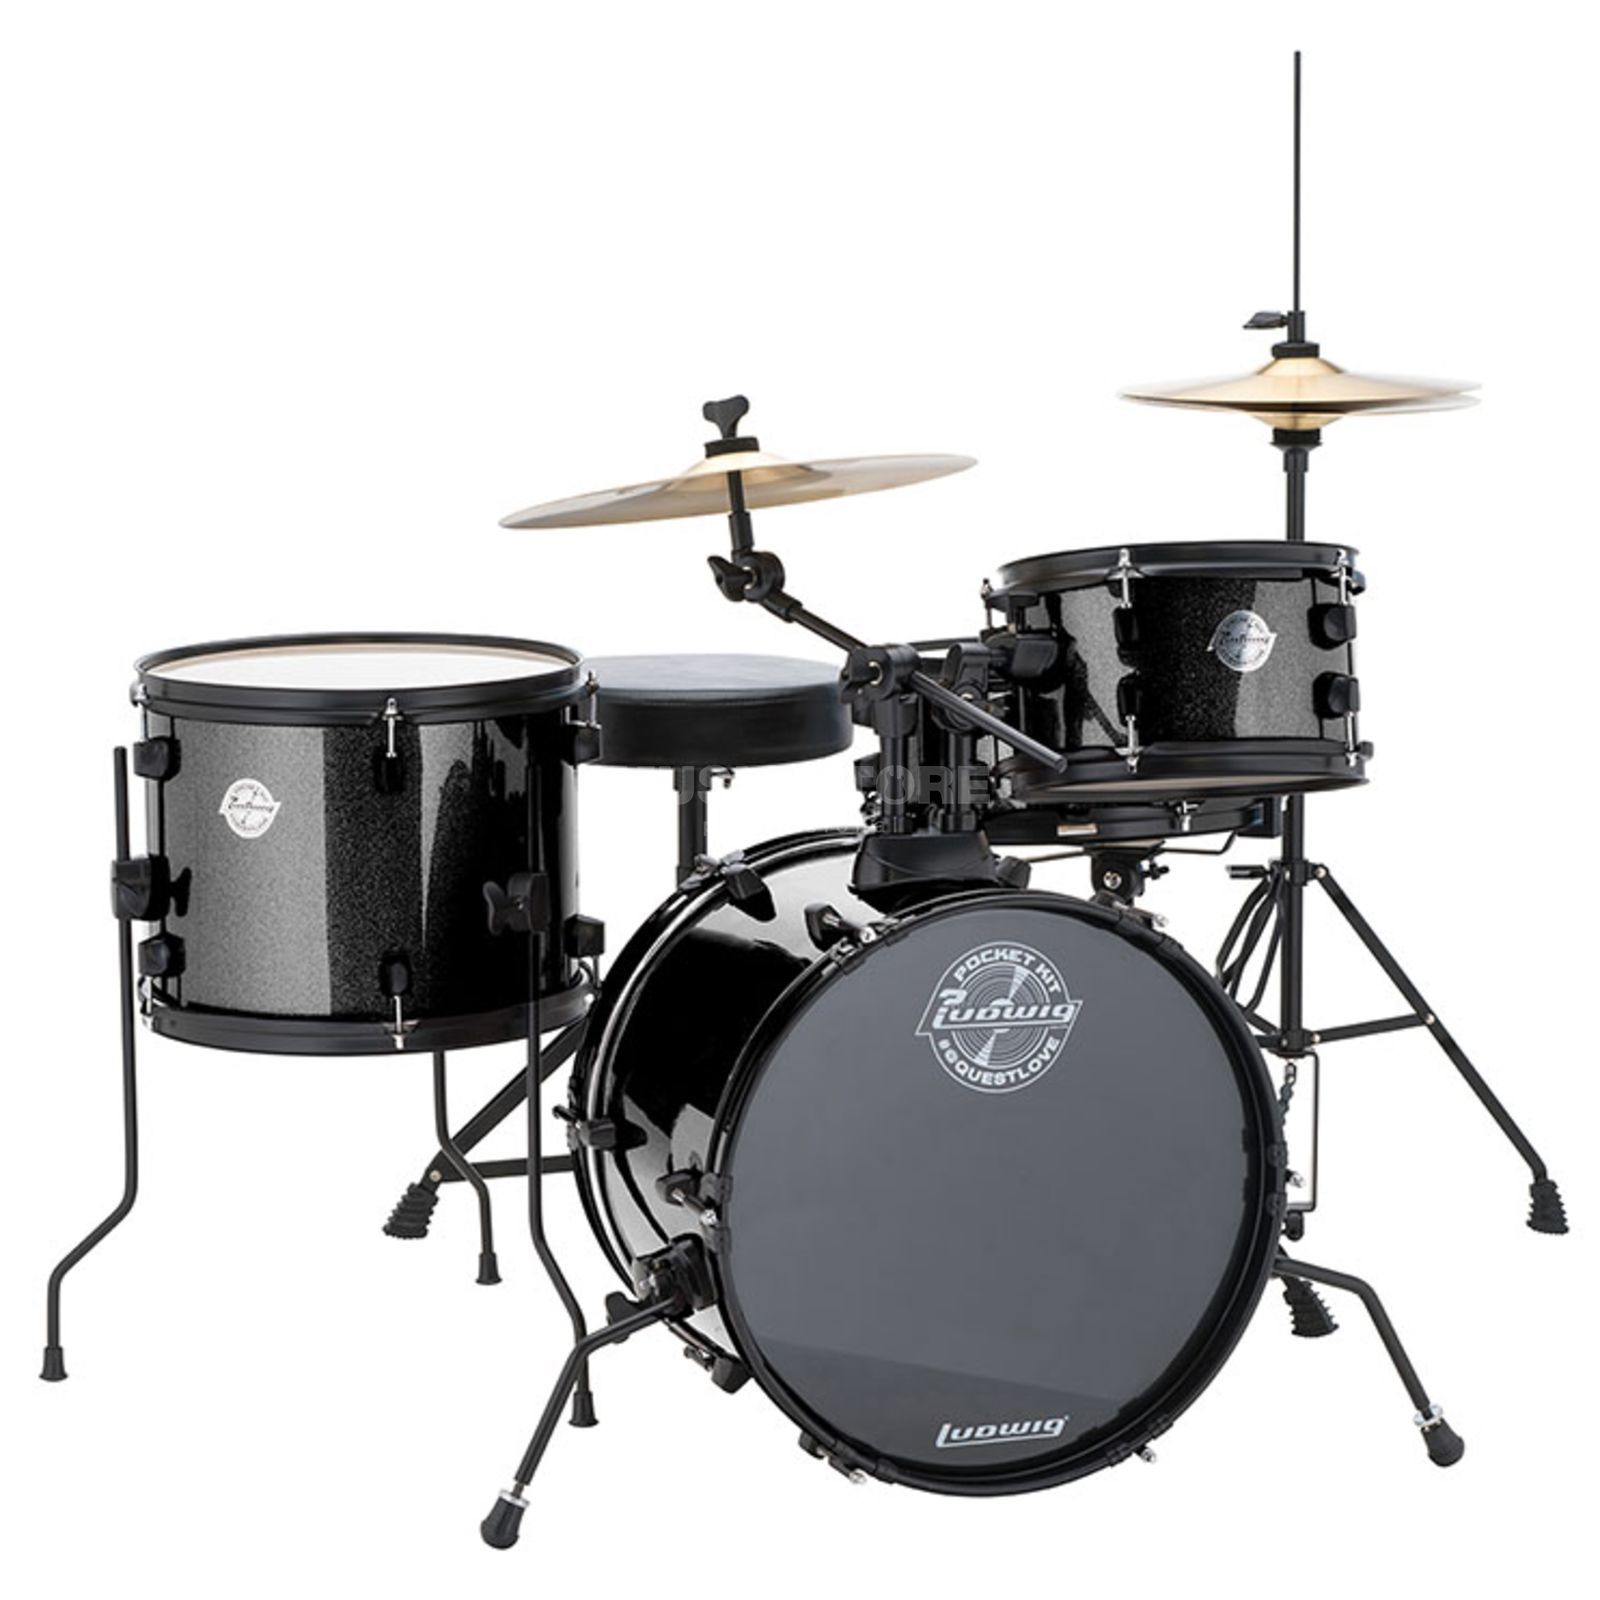 Ludwig Pocket Kit, Black Sparkle Produktbild